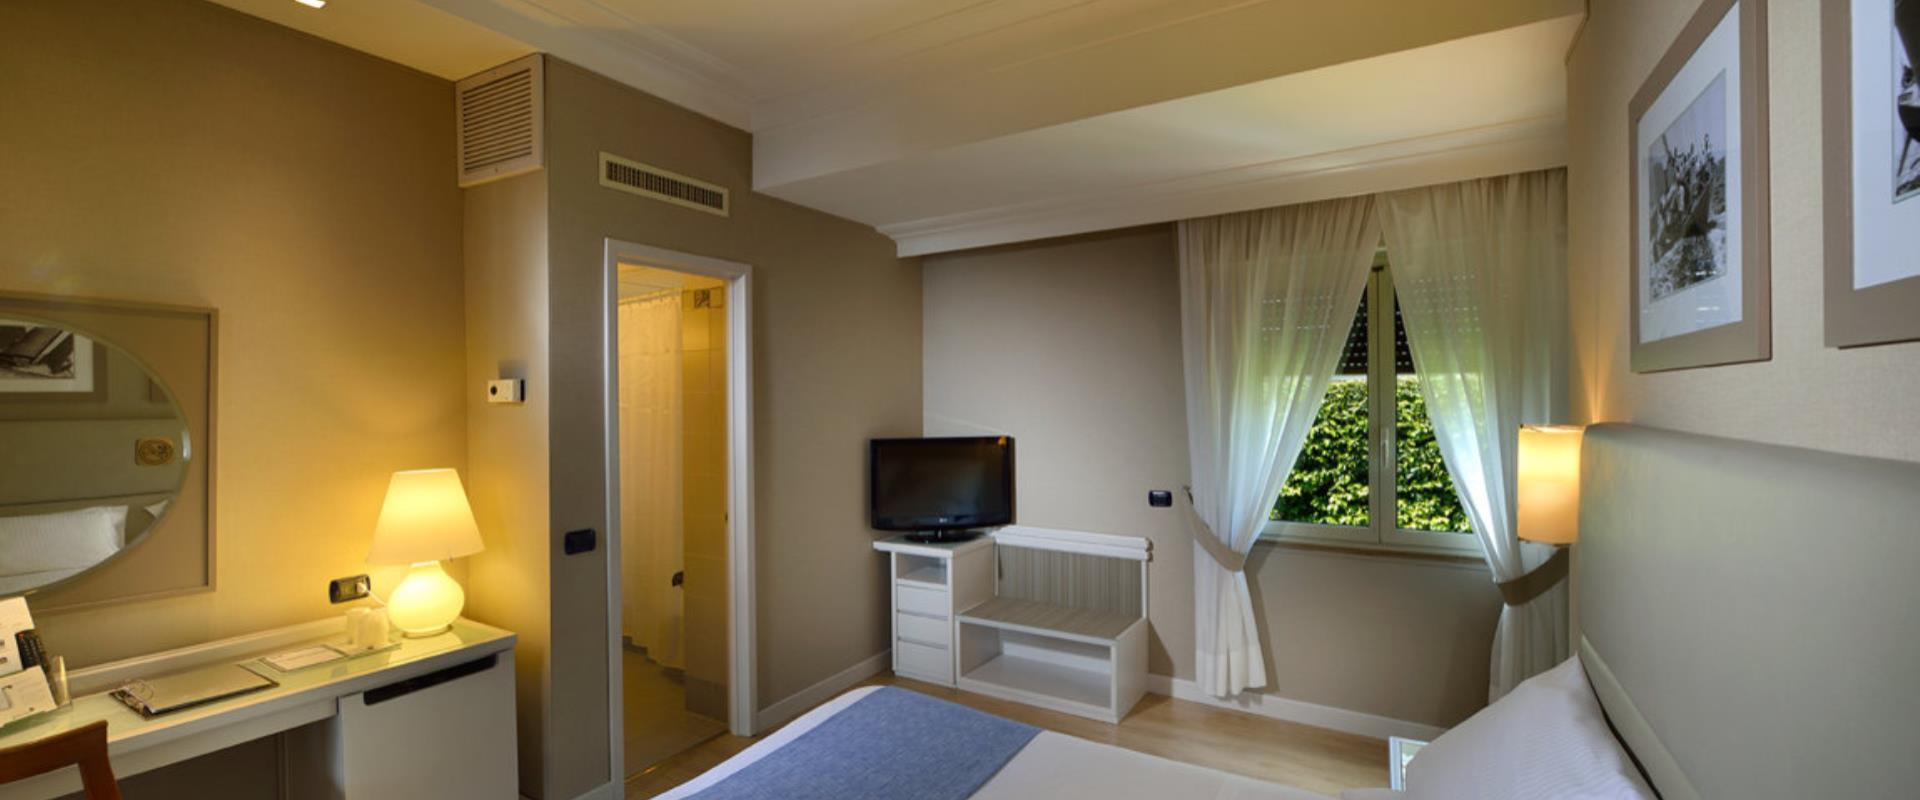 Enjoy relaxing in the comfort rooms of the BW Signature Collection Hotel Paradiso